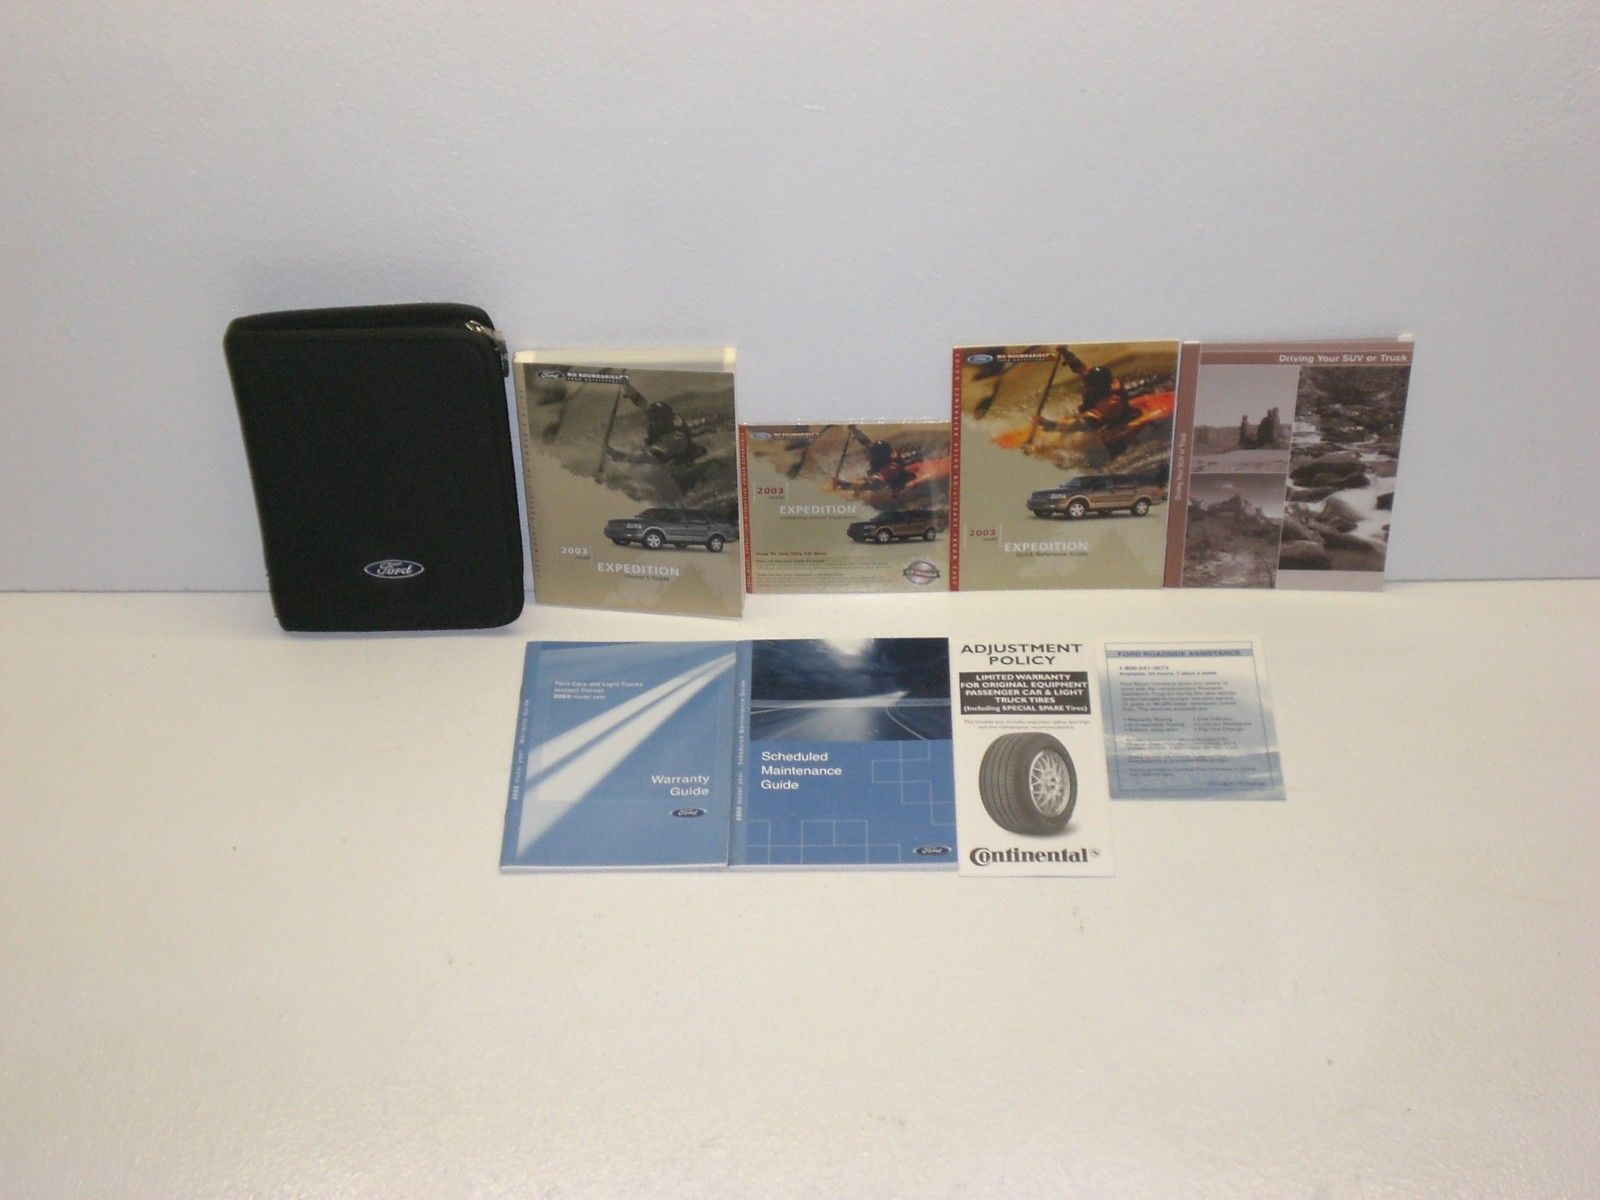 hight resolution of 2003 ford expedition owners manual set w cd ebay link